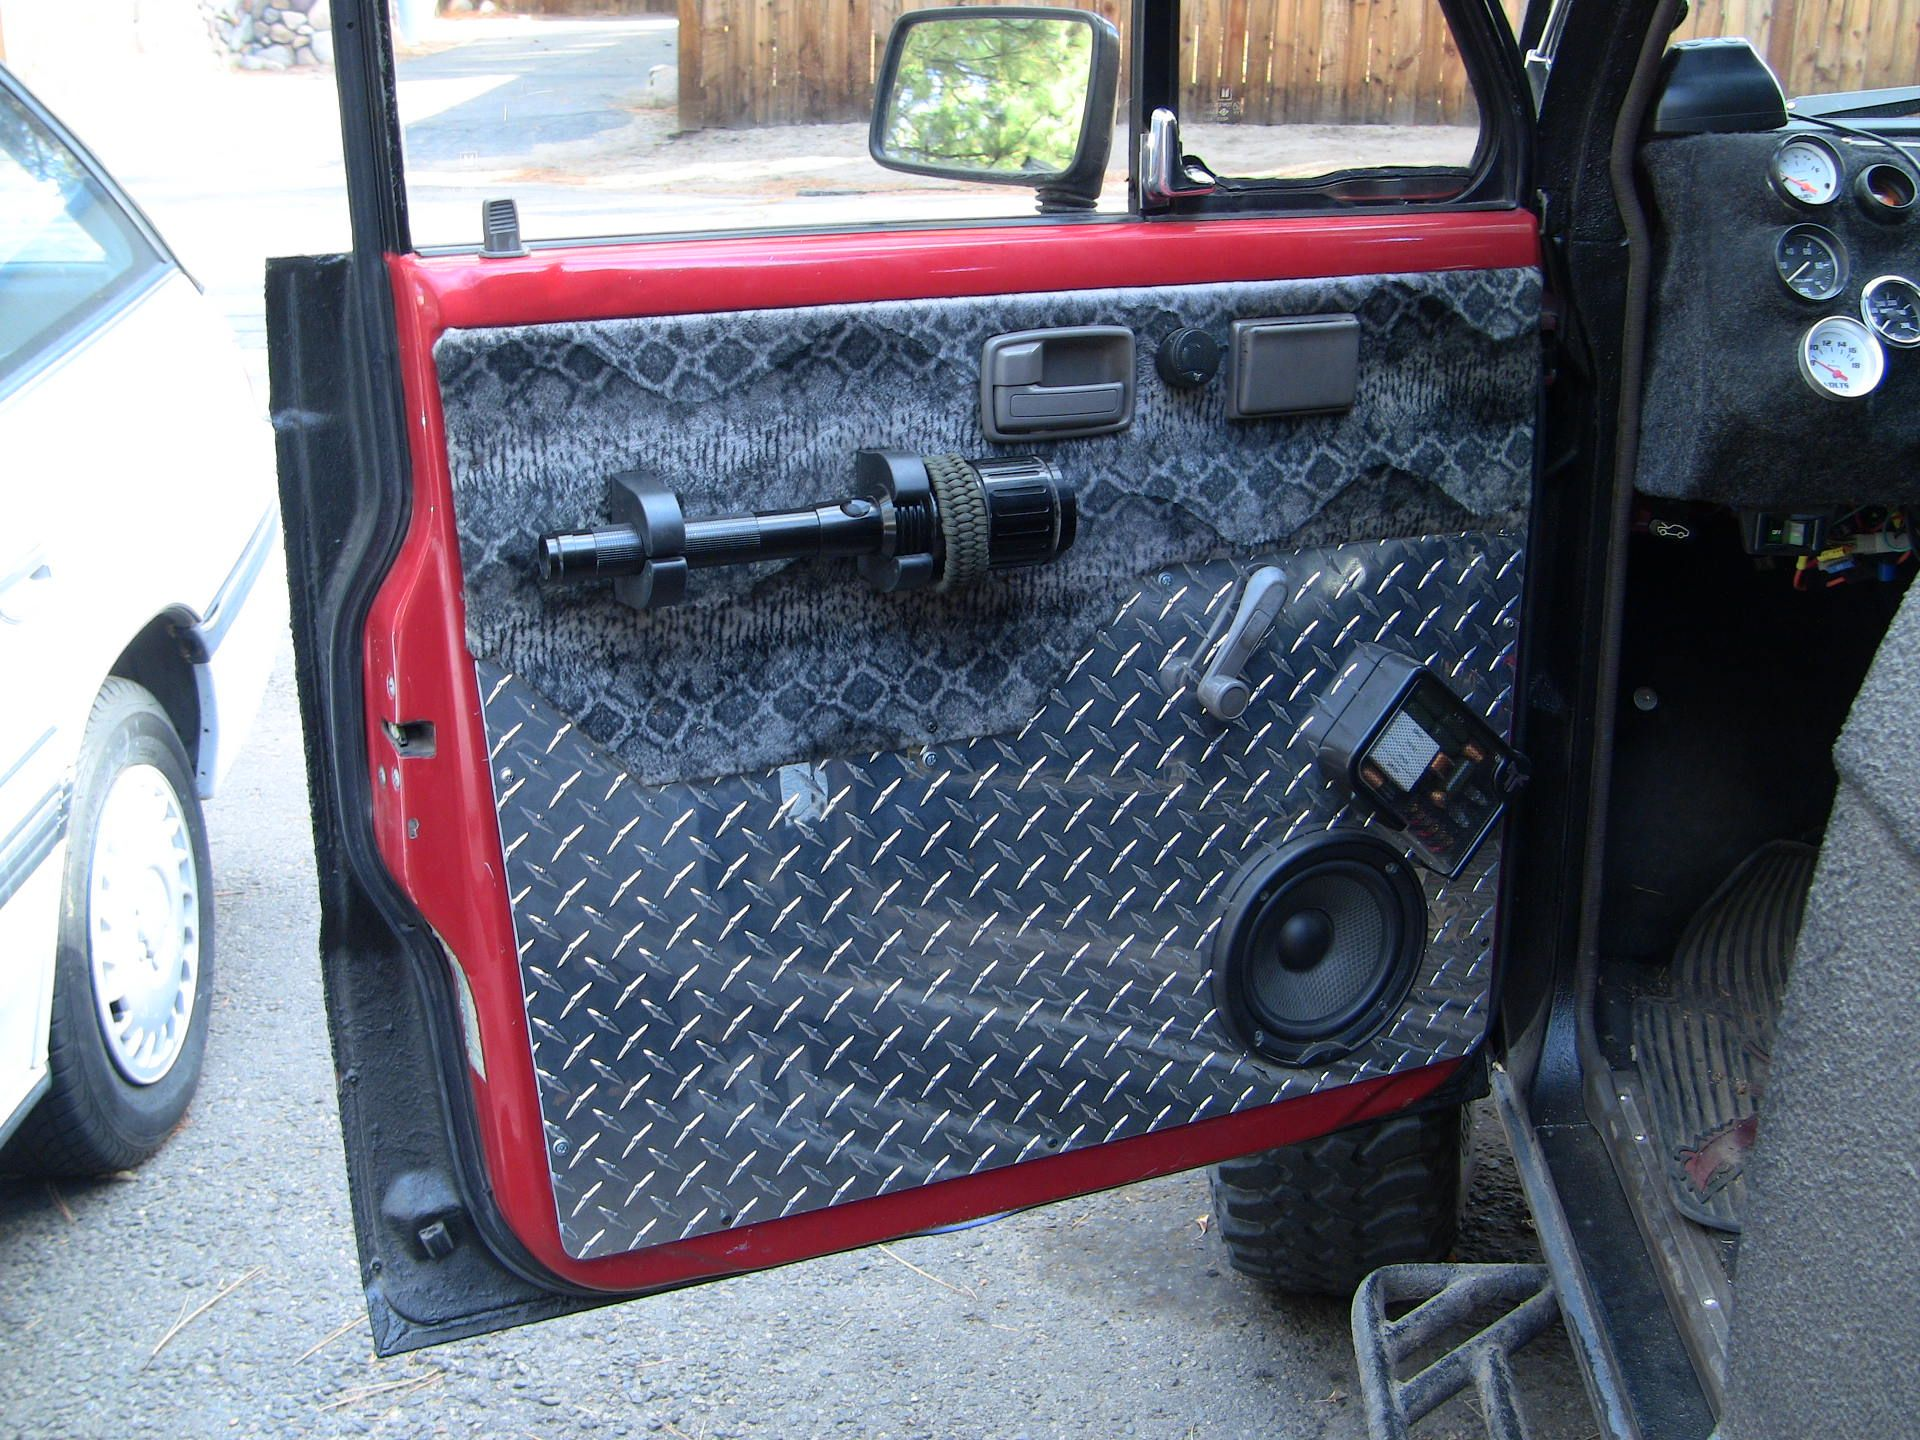 My Trooper Image By Ken Roule Overland Truck Jeep Xj Truck Interior